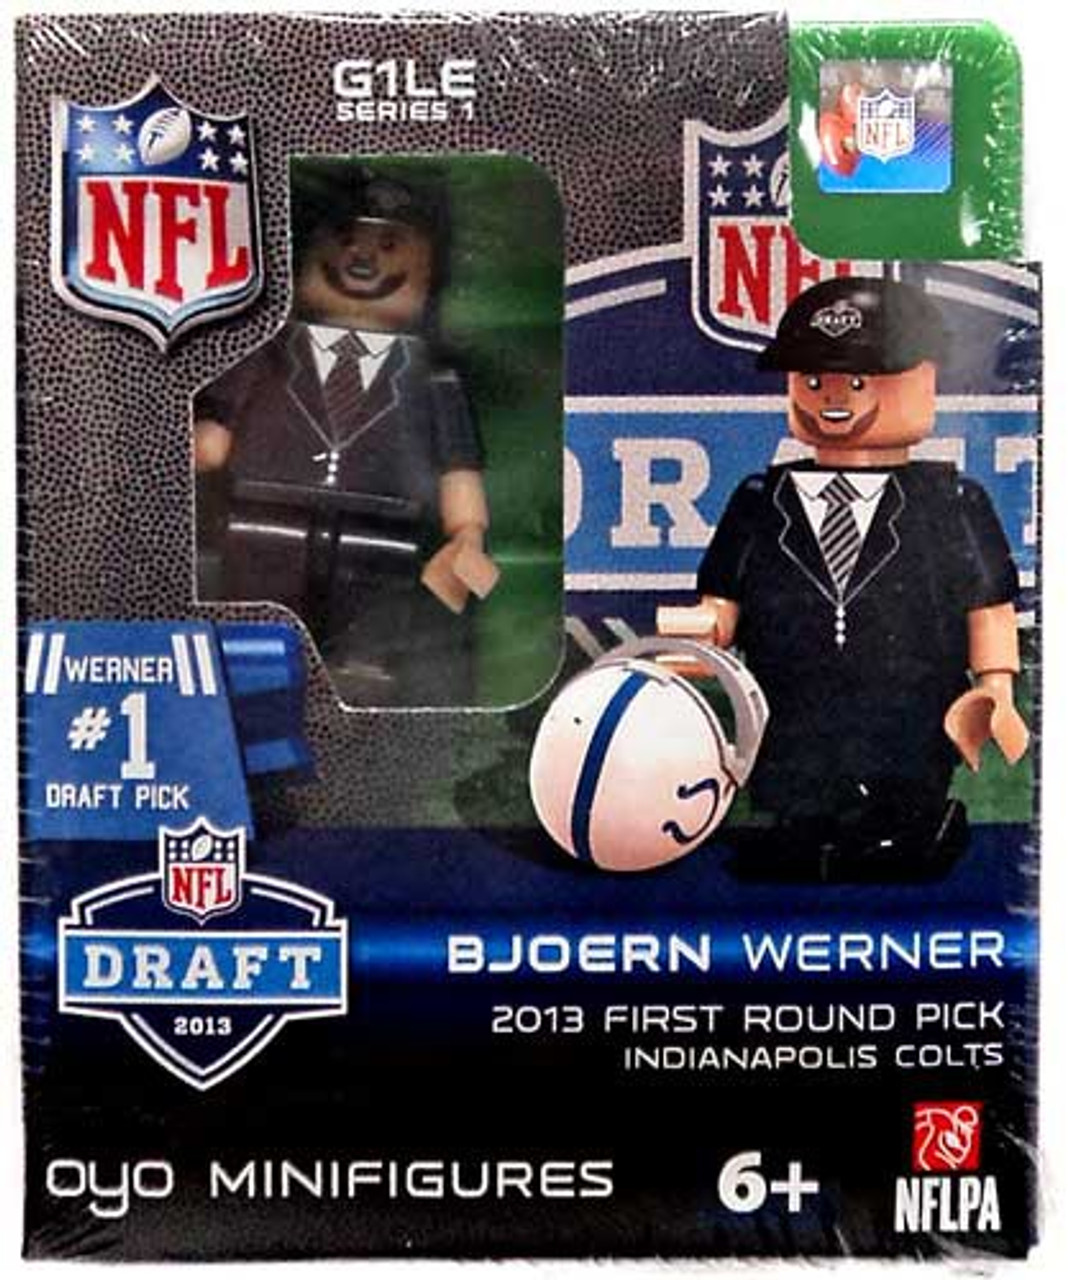 Indianapolis Colts NFL 2013 Draft First Round Picks Bjoern Werner Minifigure